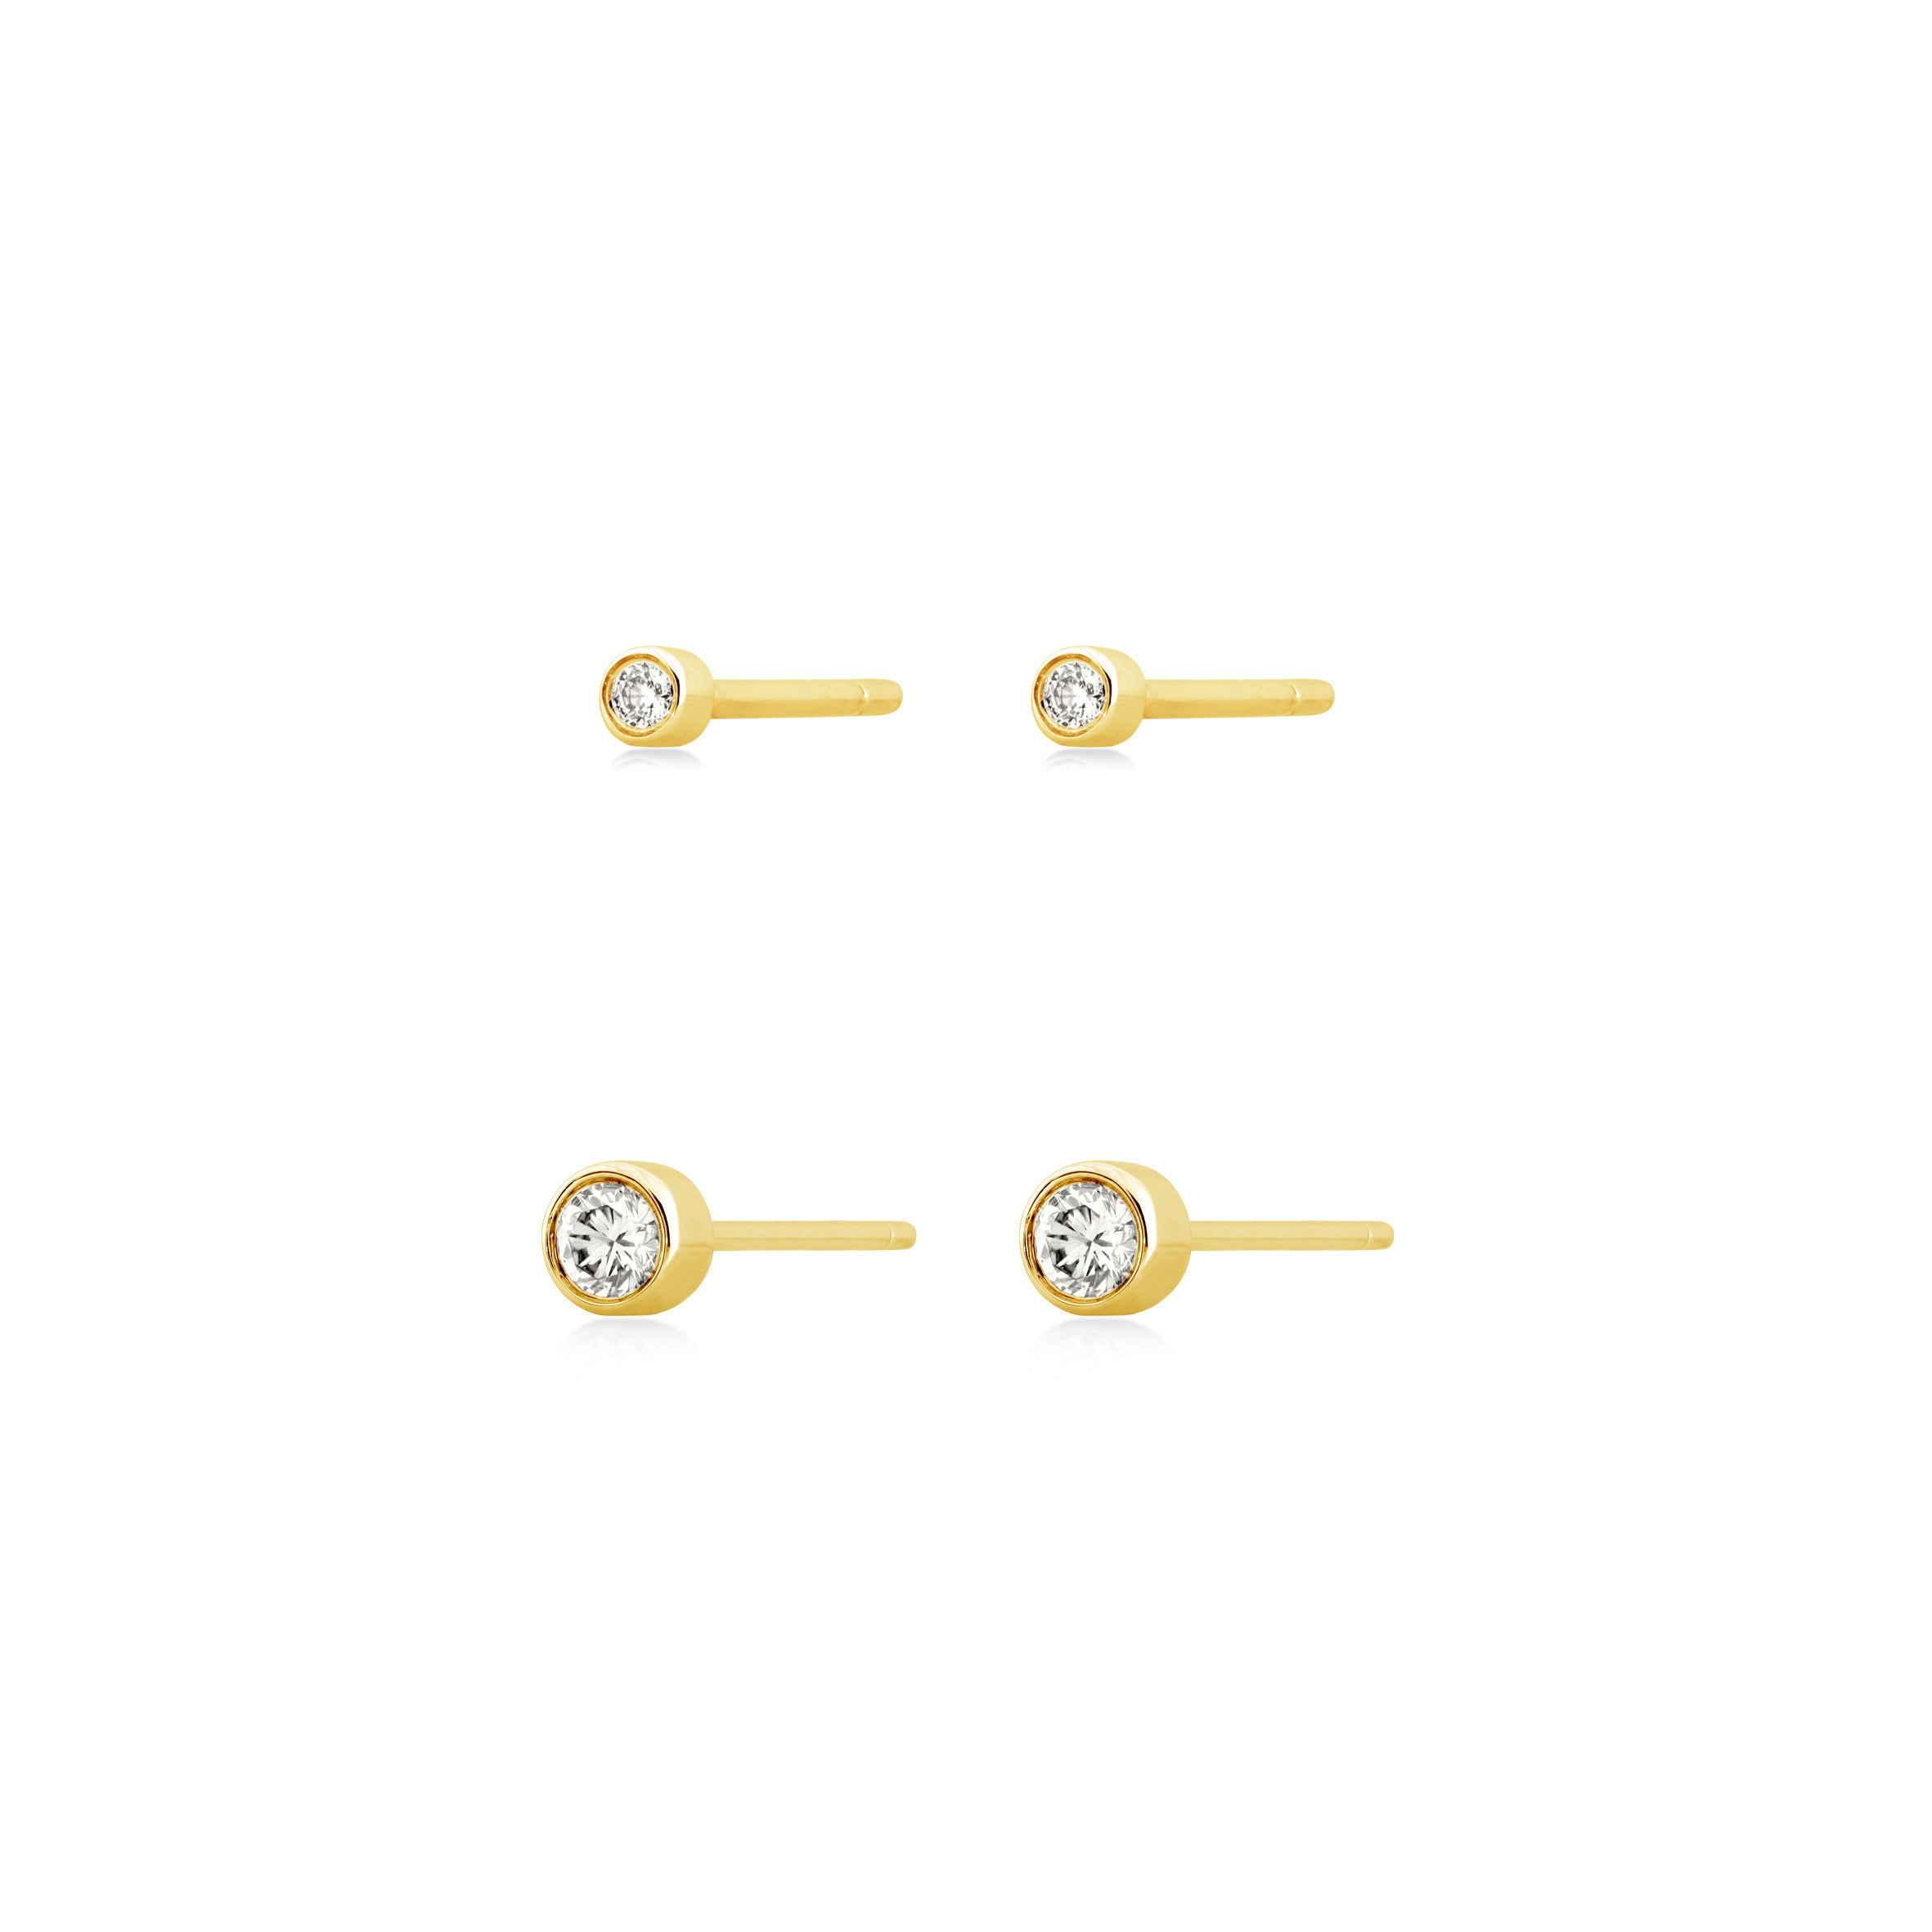 Bezel Set Stackable Studs , Earrings - Fine Jewelry, RoCHIC, RoCHIC Fine Jewelry